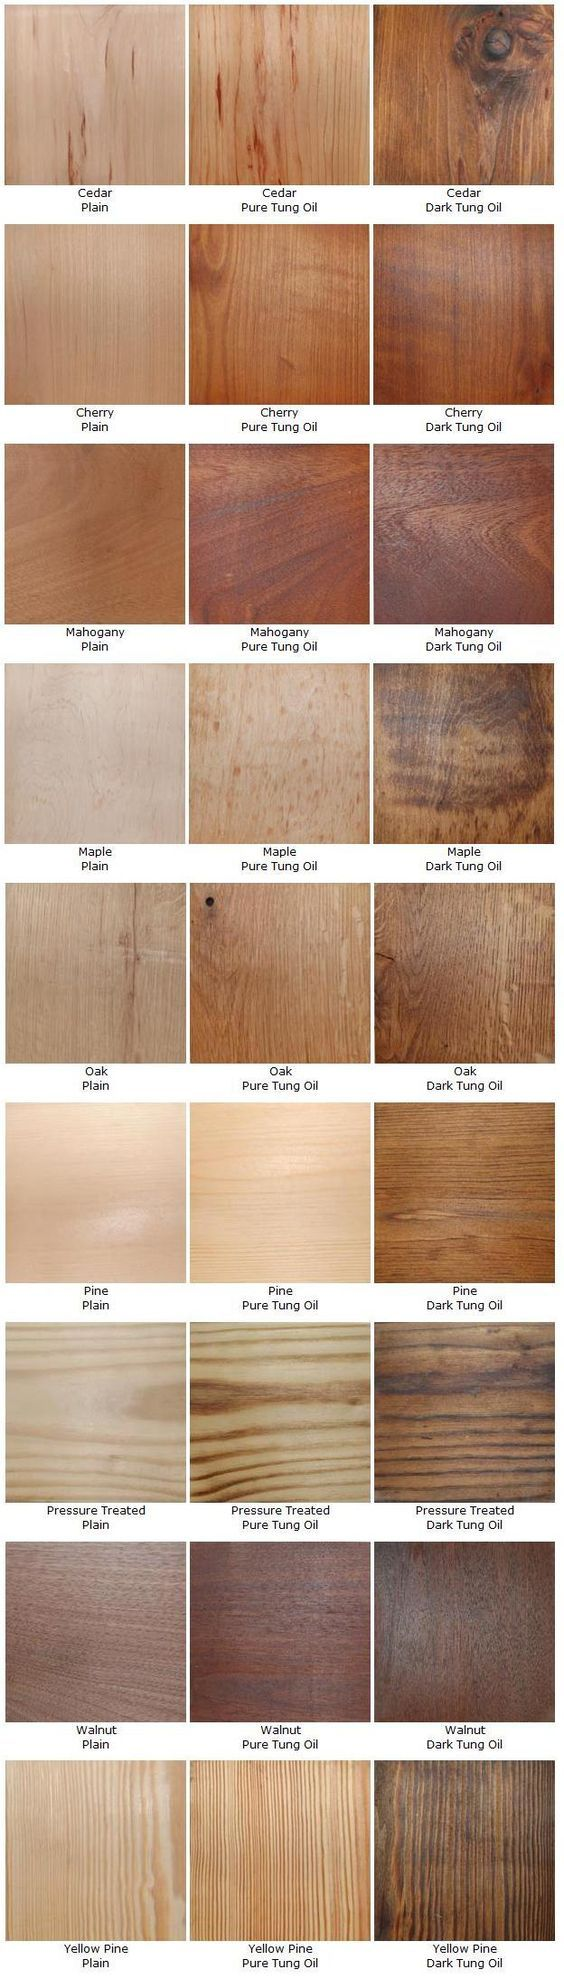 Pure vs Dark Tung Oil. Best 25  Tung oil ideas on Pinterest   Tung oil finish